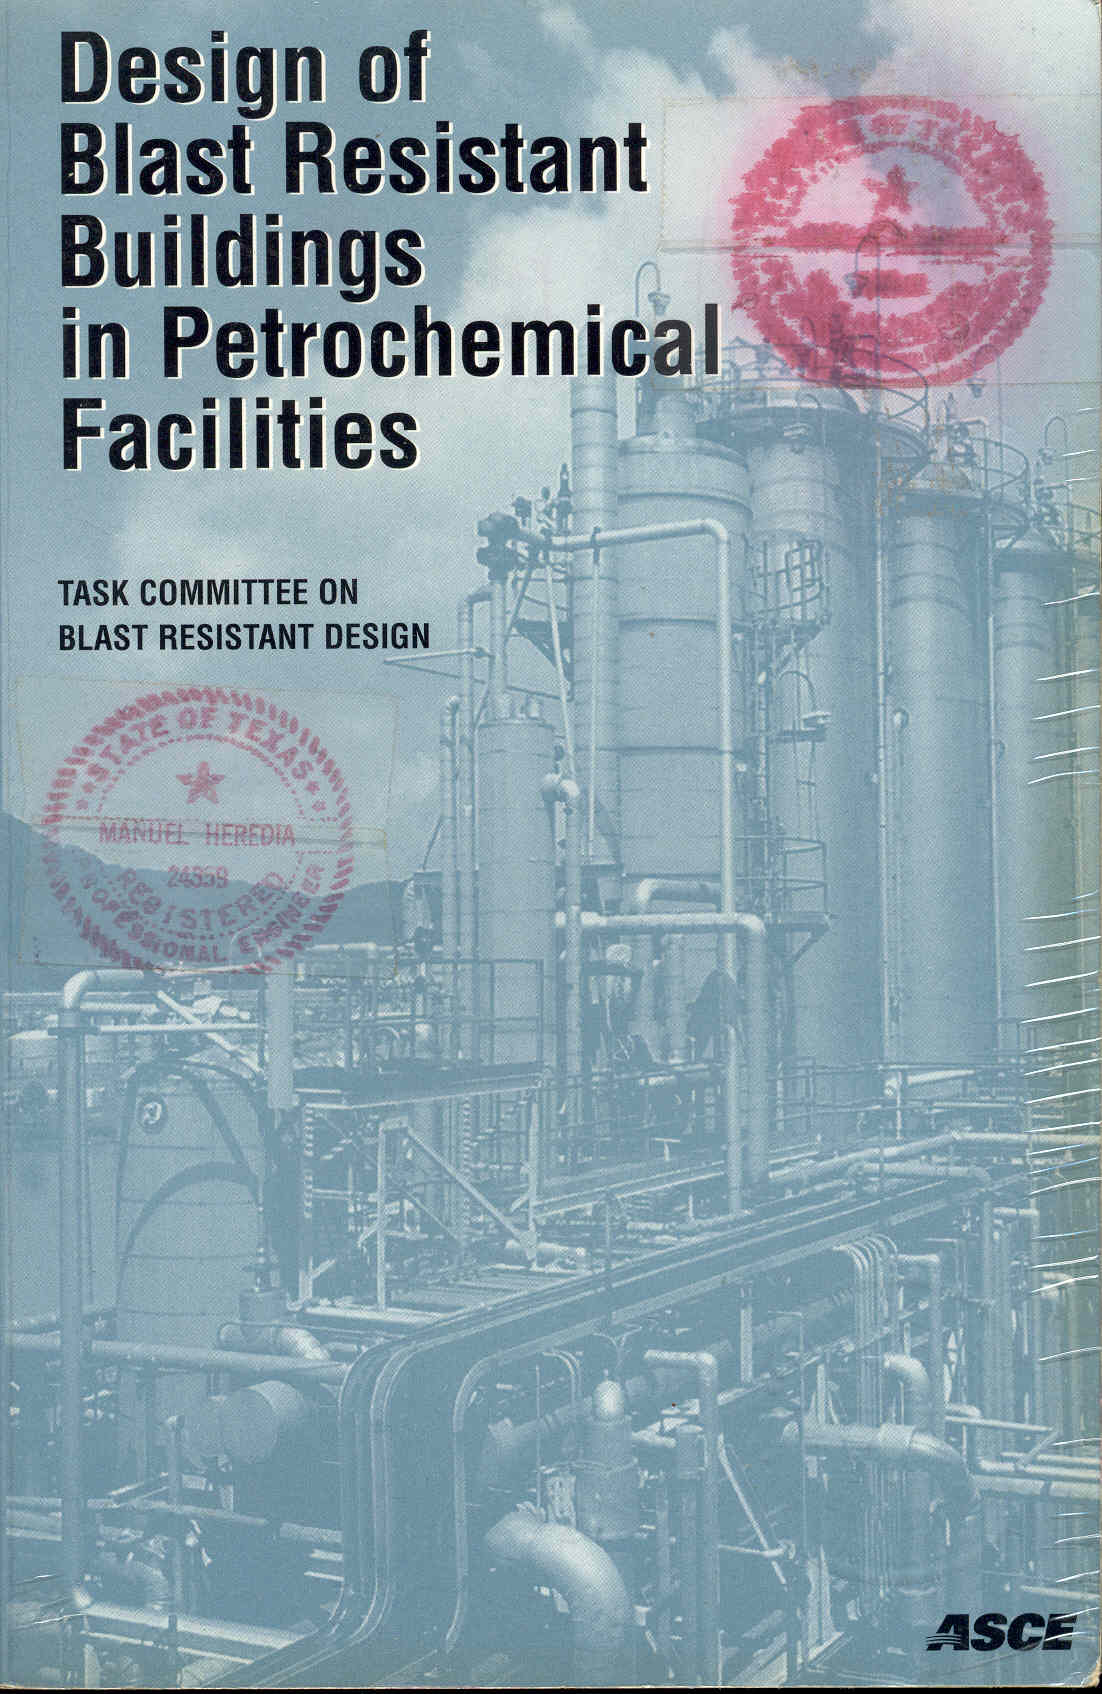 Image for Design of Blast Resistant Buildings in Petrochemical Facilities